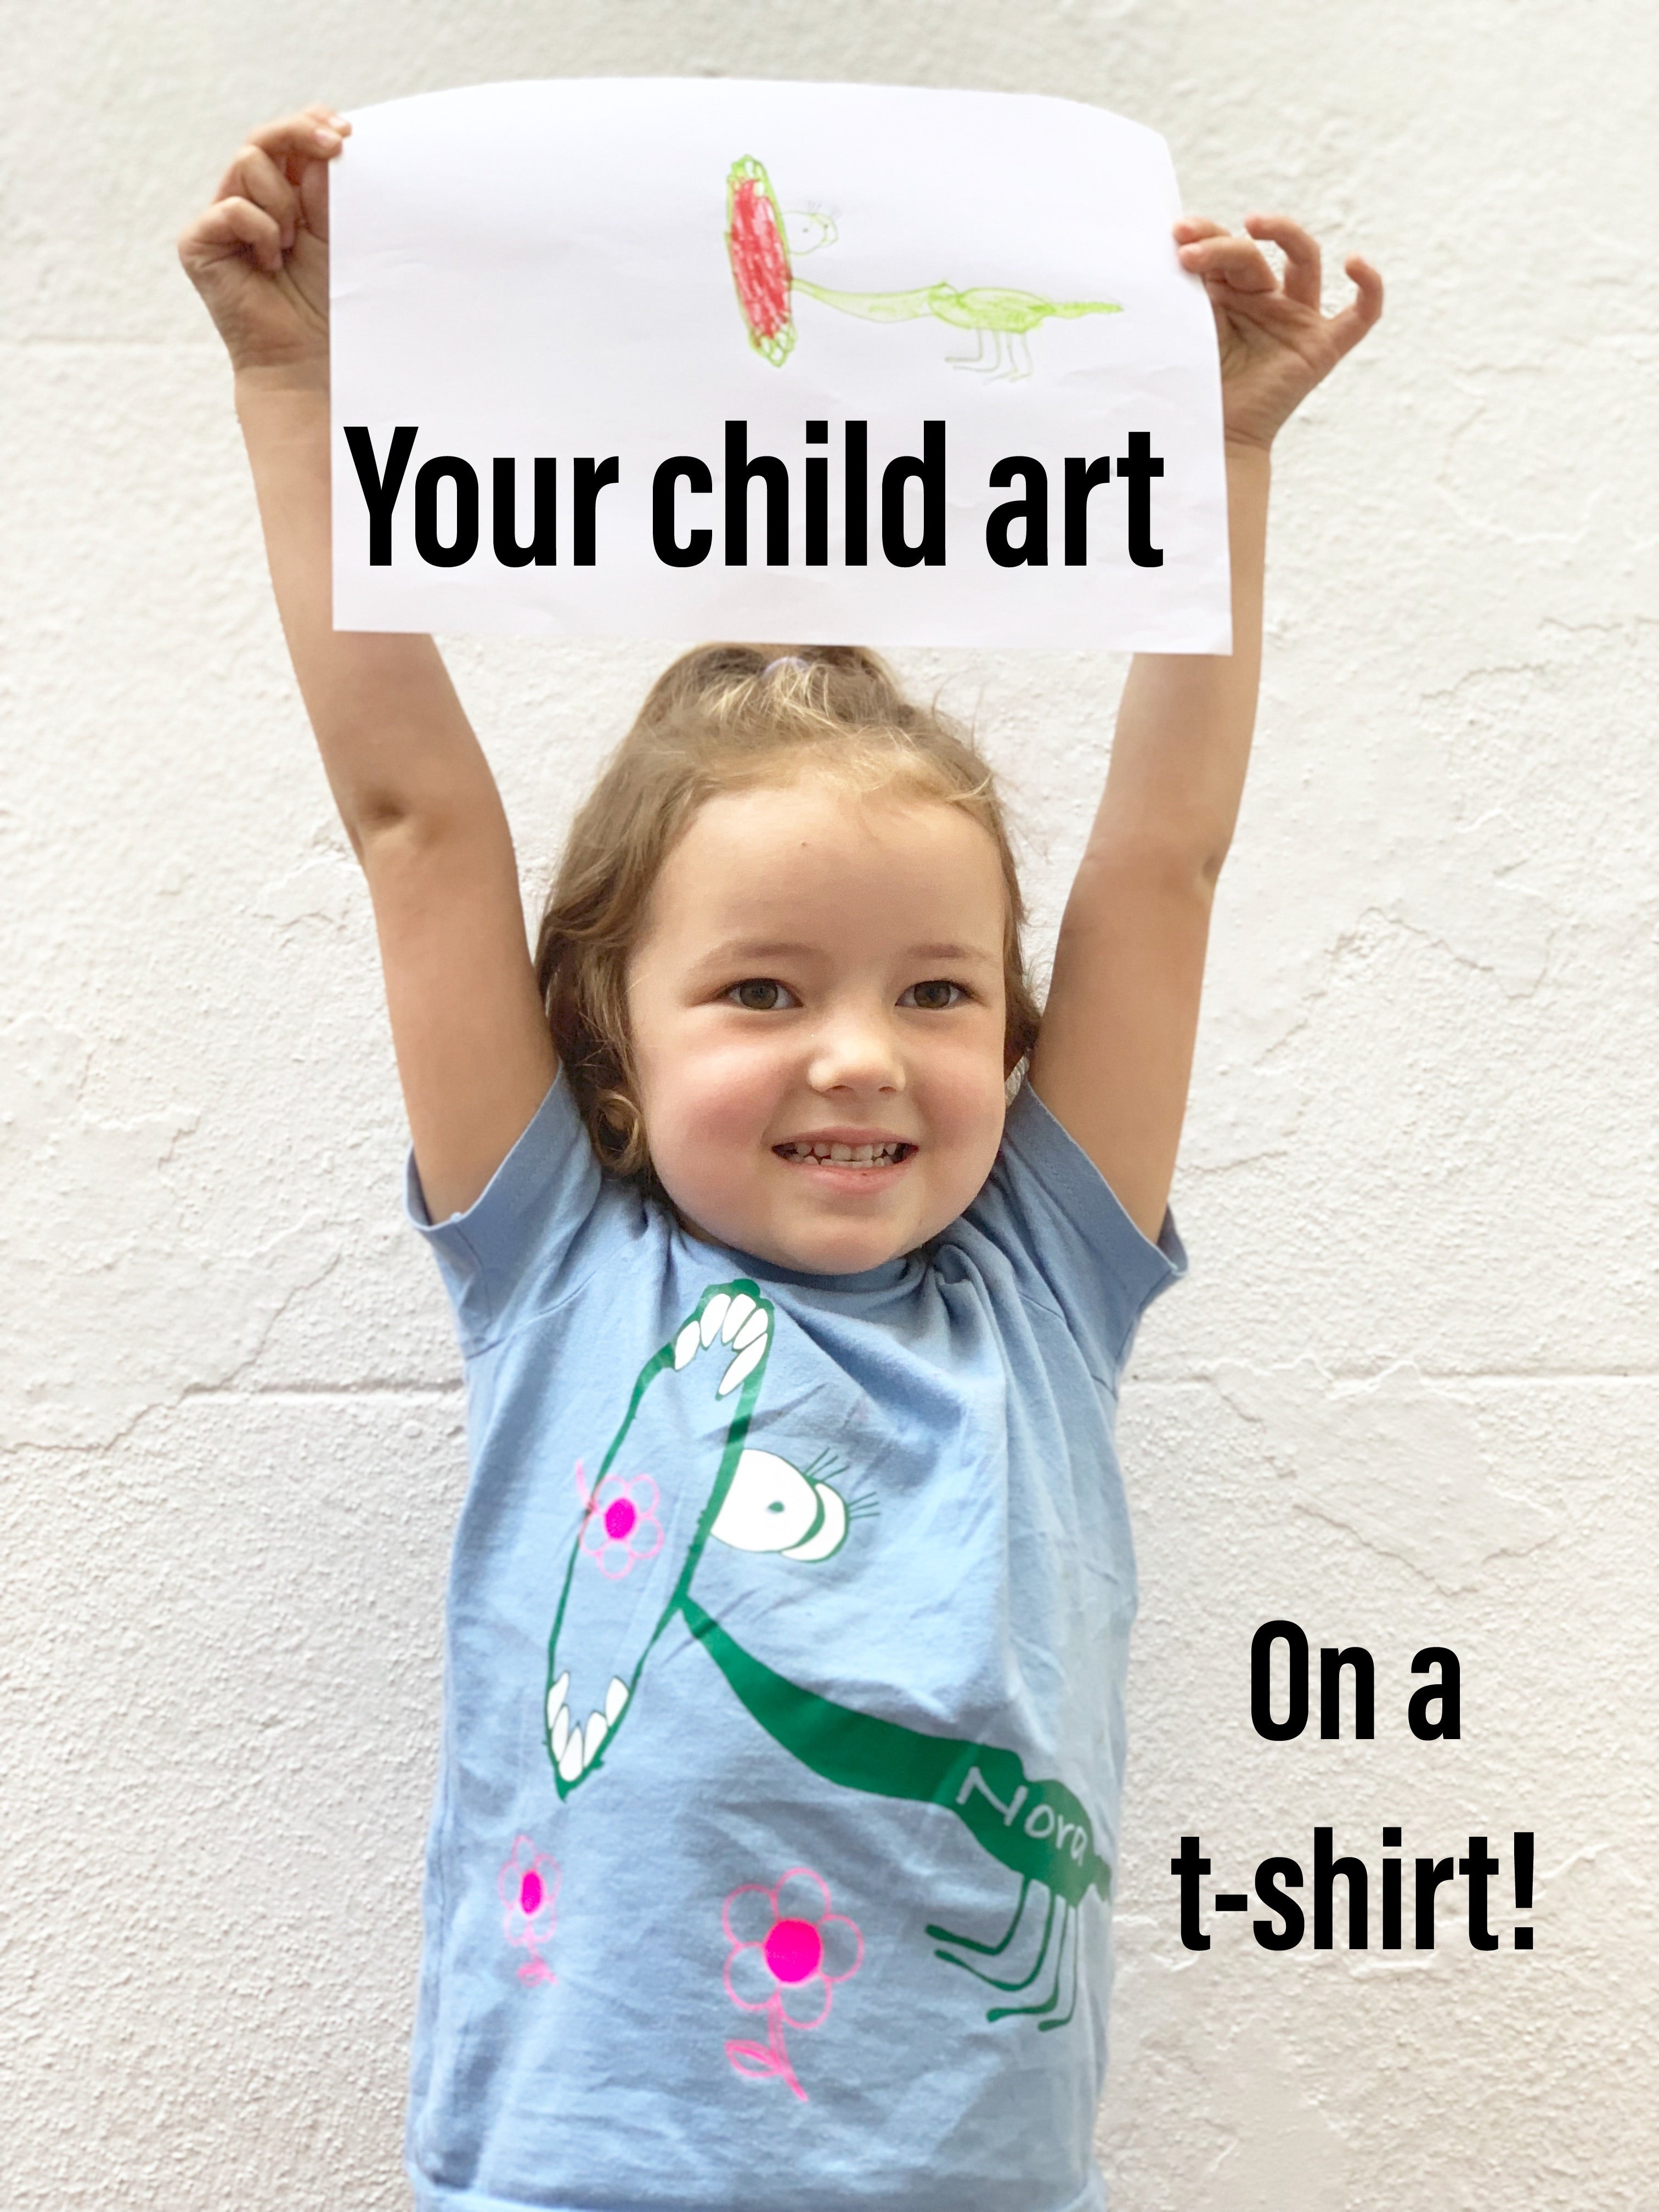 Your child art t-shirt